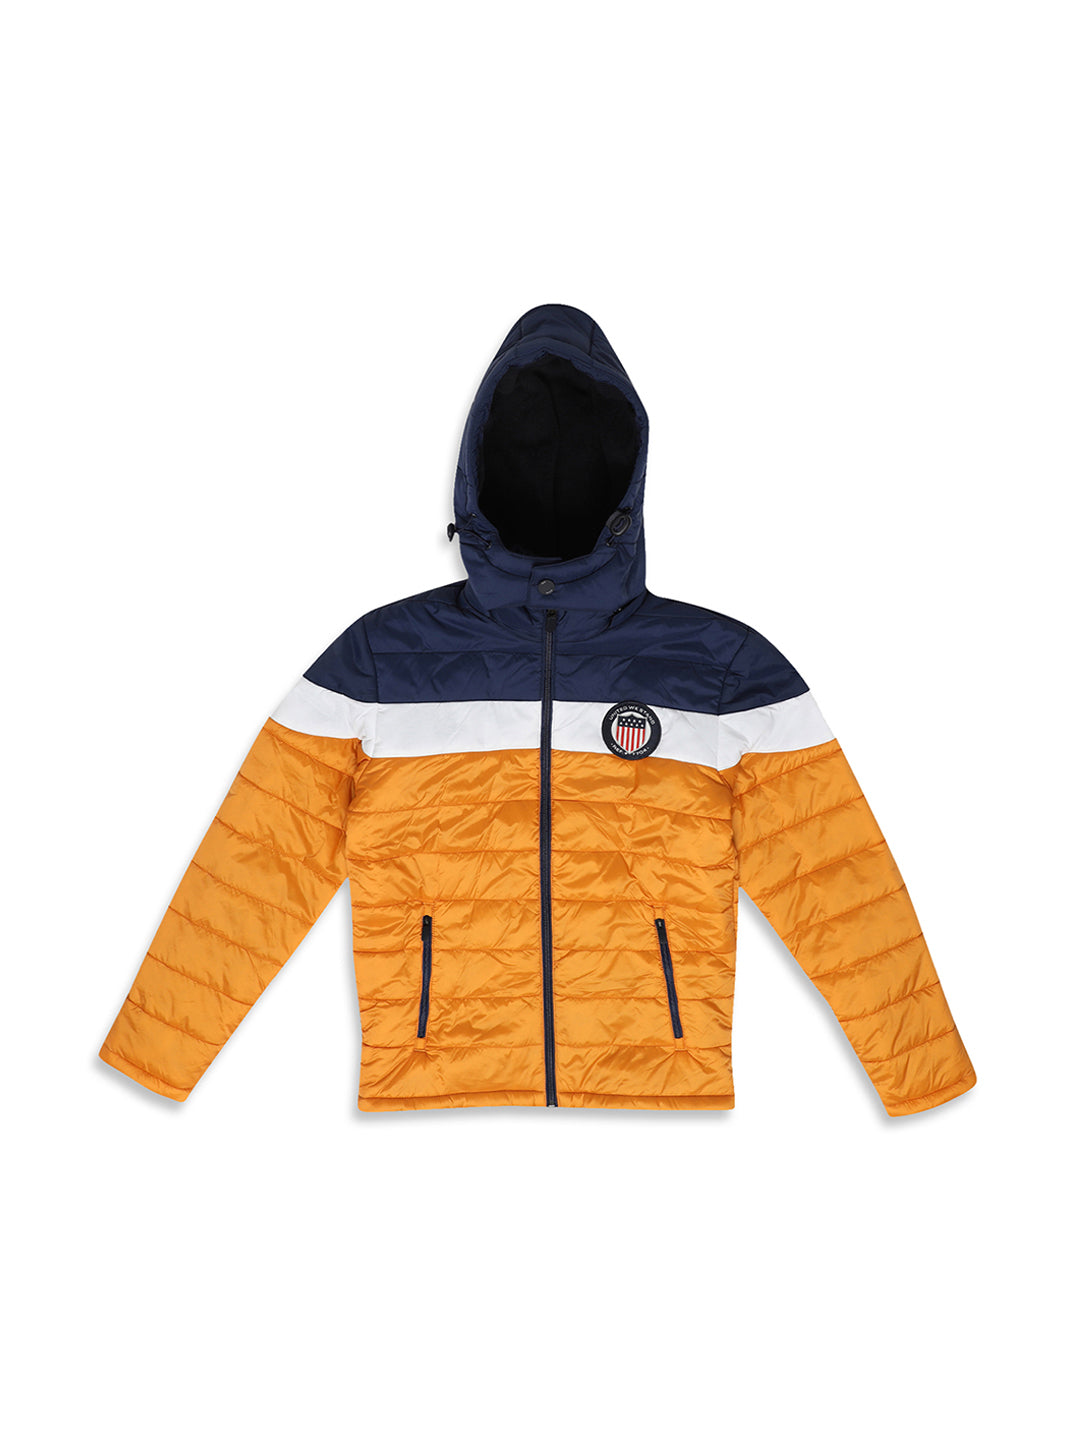 Octave Apparels Yellow-Navy Jacket for Kids